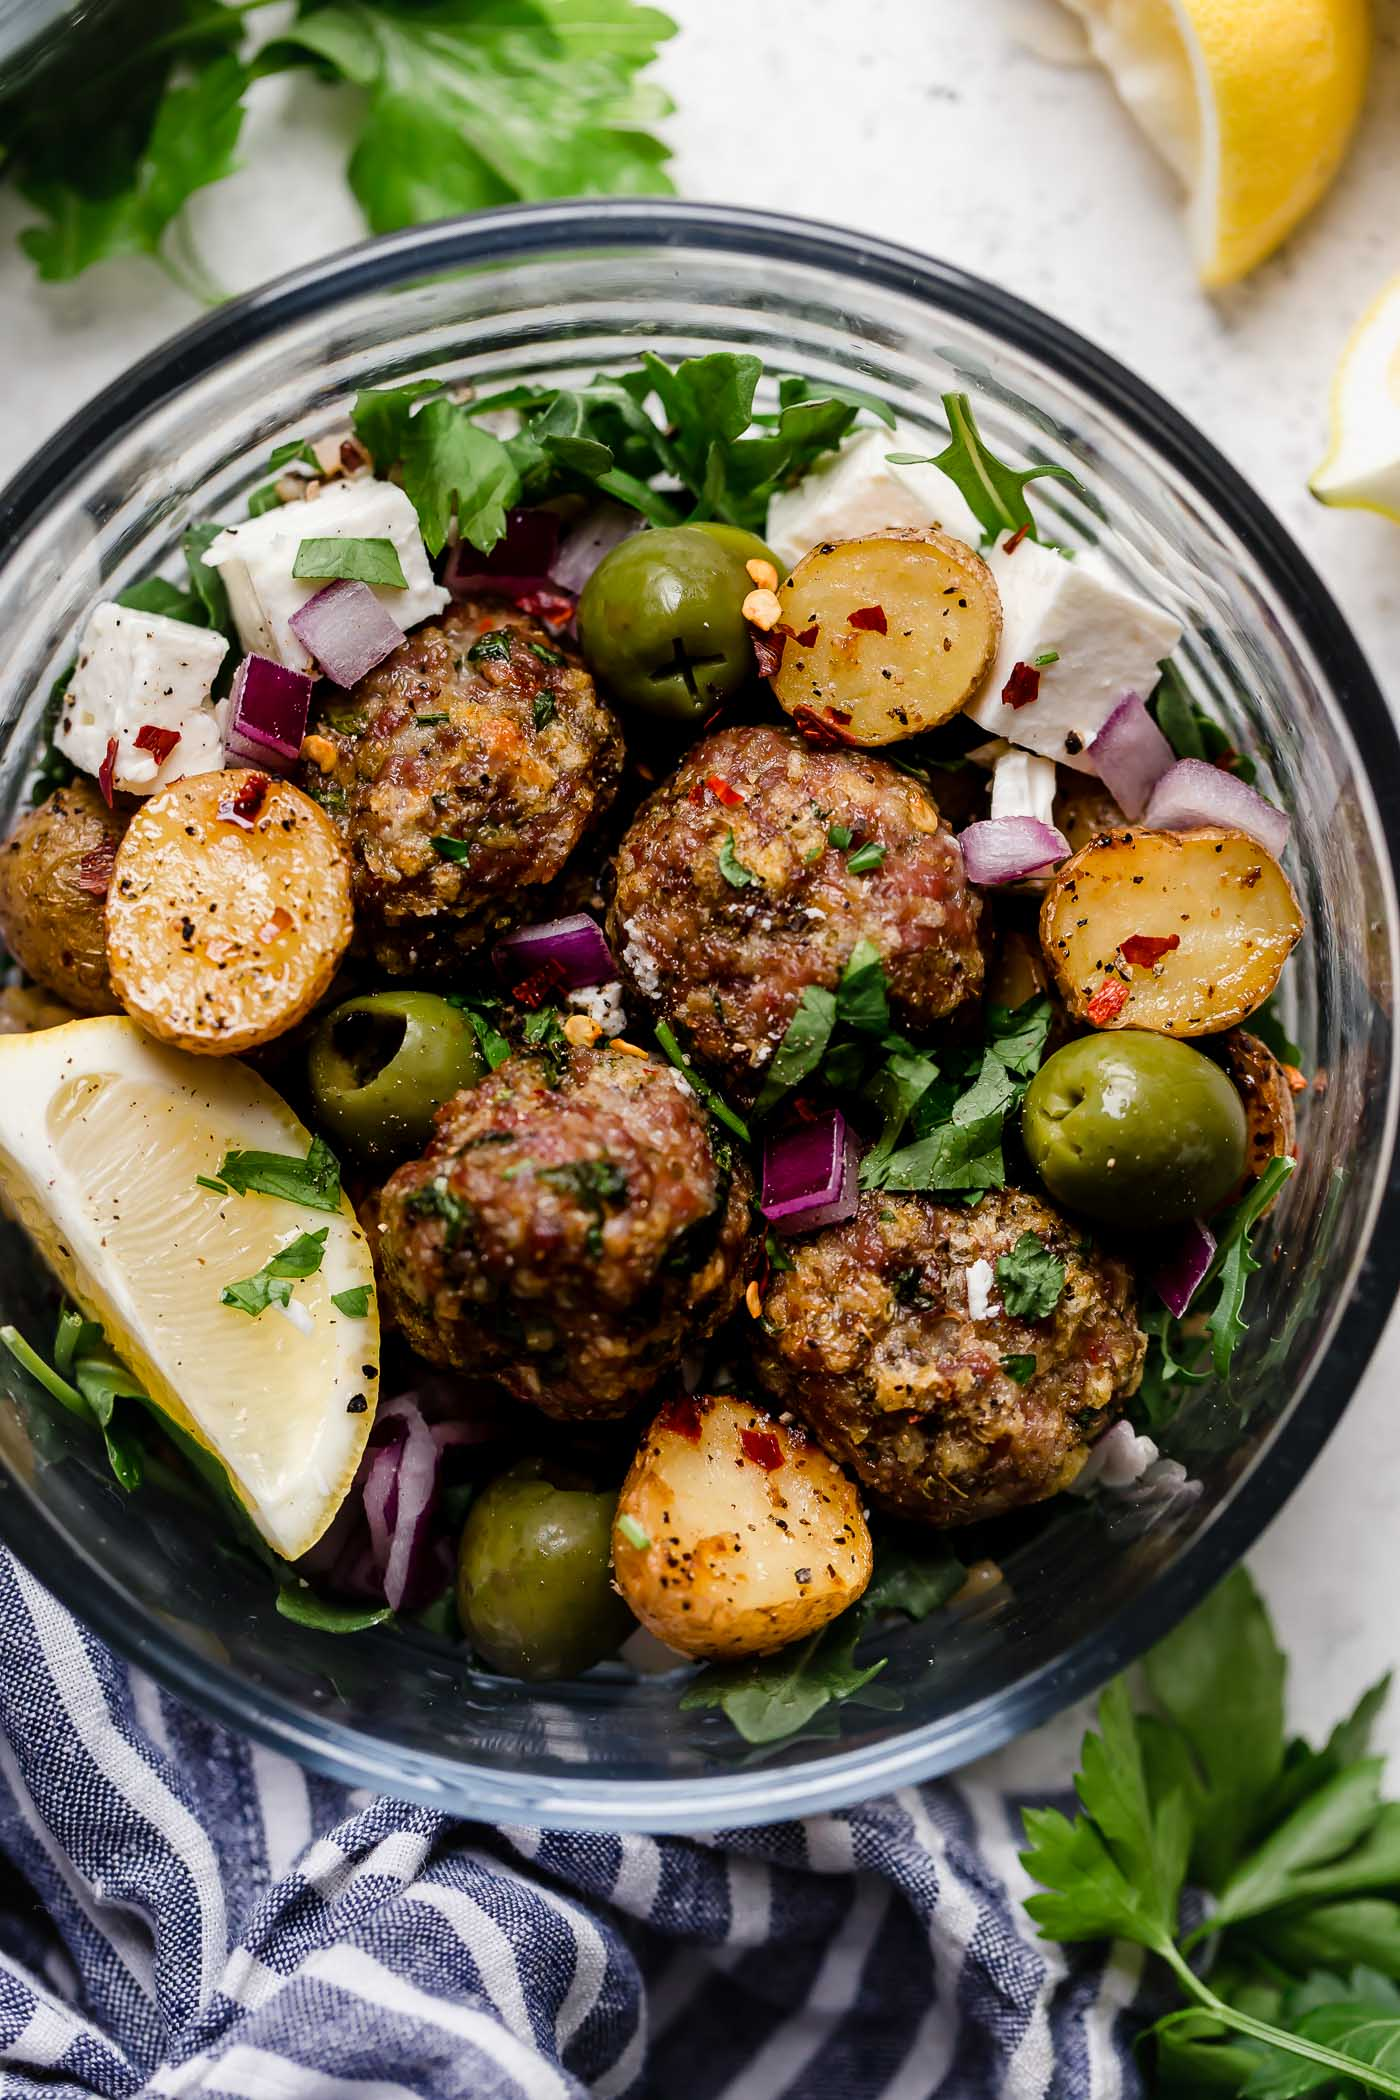 the easiest juicy & tender baked lamb meatballs, made with panko breadcrumbs, lemon, parsley, oregano & cumin, served on top of a seriously healthy meal prep bowl with lemony Greek roasted potatoes, greens, feta, olives, & homemade Romesco sauce. an easy & satisfying meal prep recipe for lunches all week long! #playswellwithbutter #lambmeatballs #bakedlambmeatballs #greeklambmeatballs #groundlamb #mealpreprecipes #mealpreprecipesfortheweek #mediterraneandiet #healthybowlsrecipe